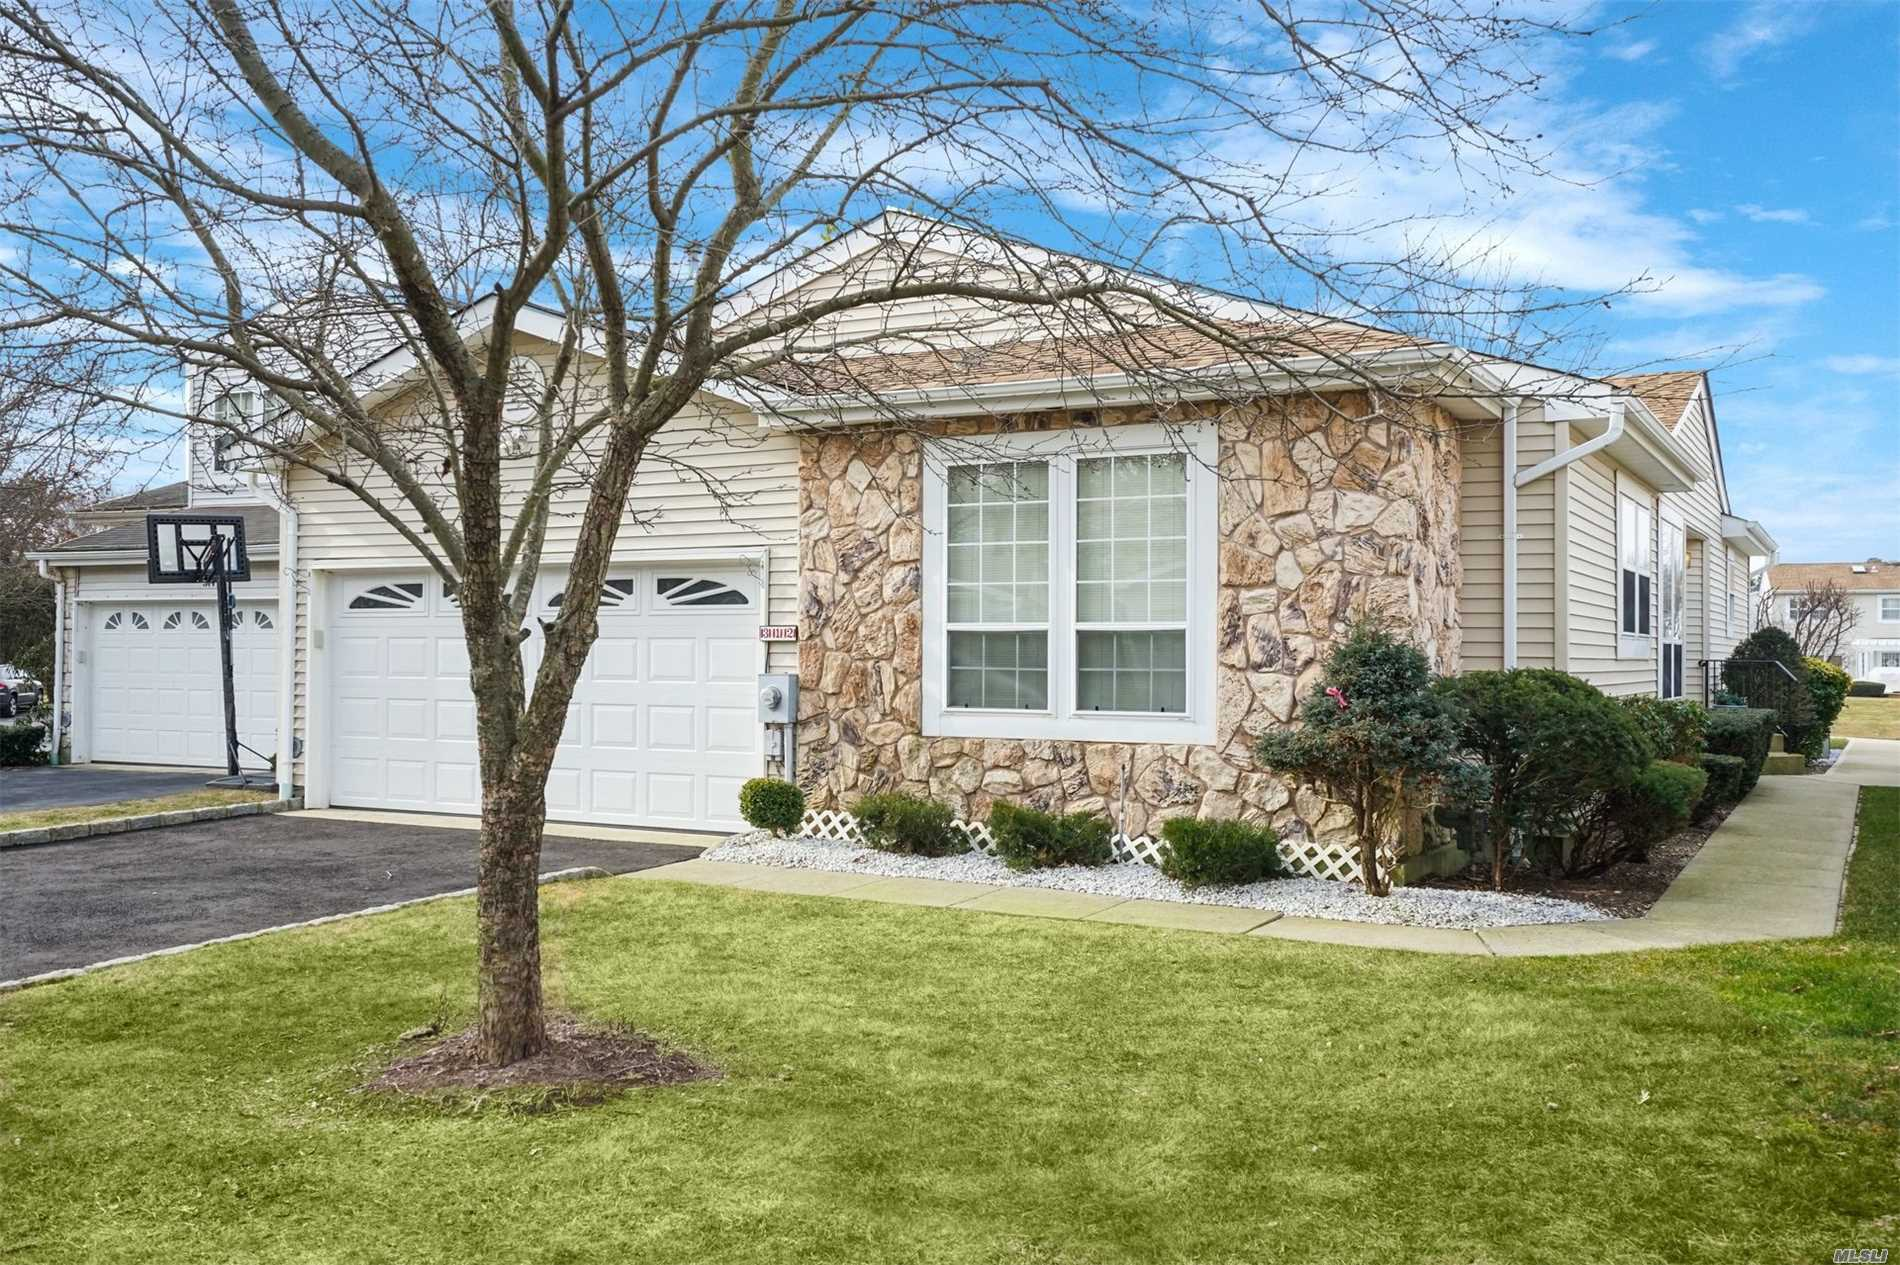 Rare Find! One Level Living At Its Finest! 24 Hour Manned Gate! This Is The Home You Have Been Waiting For! Bright Spacious Formal Living & Dining Room With High Ceilings, Eat In Kitchen W New Sliders To Extended Patio W Gas Line For A Bbq Beautiful All Year Round Lakeside Views, King Size Master Suite With 2 Walk In Closets, 2nd Full Bath & 2 Addt'l Bedrooms, Huge Fully Finished Basement, New Gas Heating System & Hot Water Heater, Updated Roof, Very Active Community! Close To All!